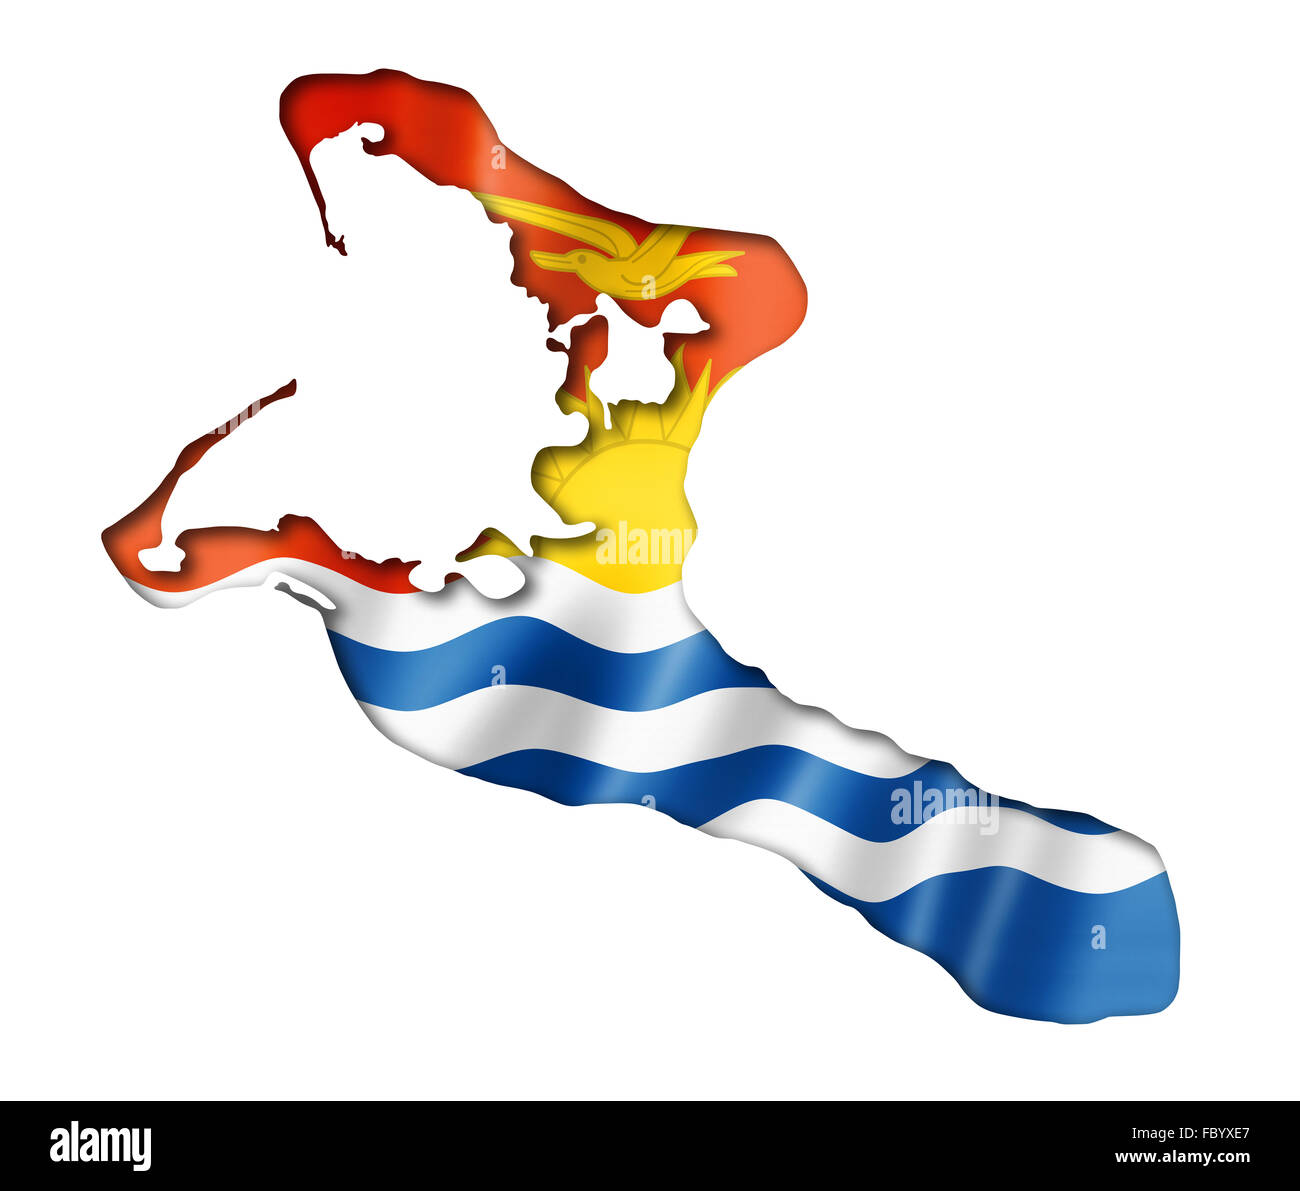 Kiribati flag map - Stock Image